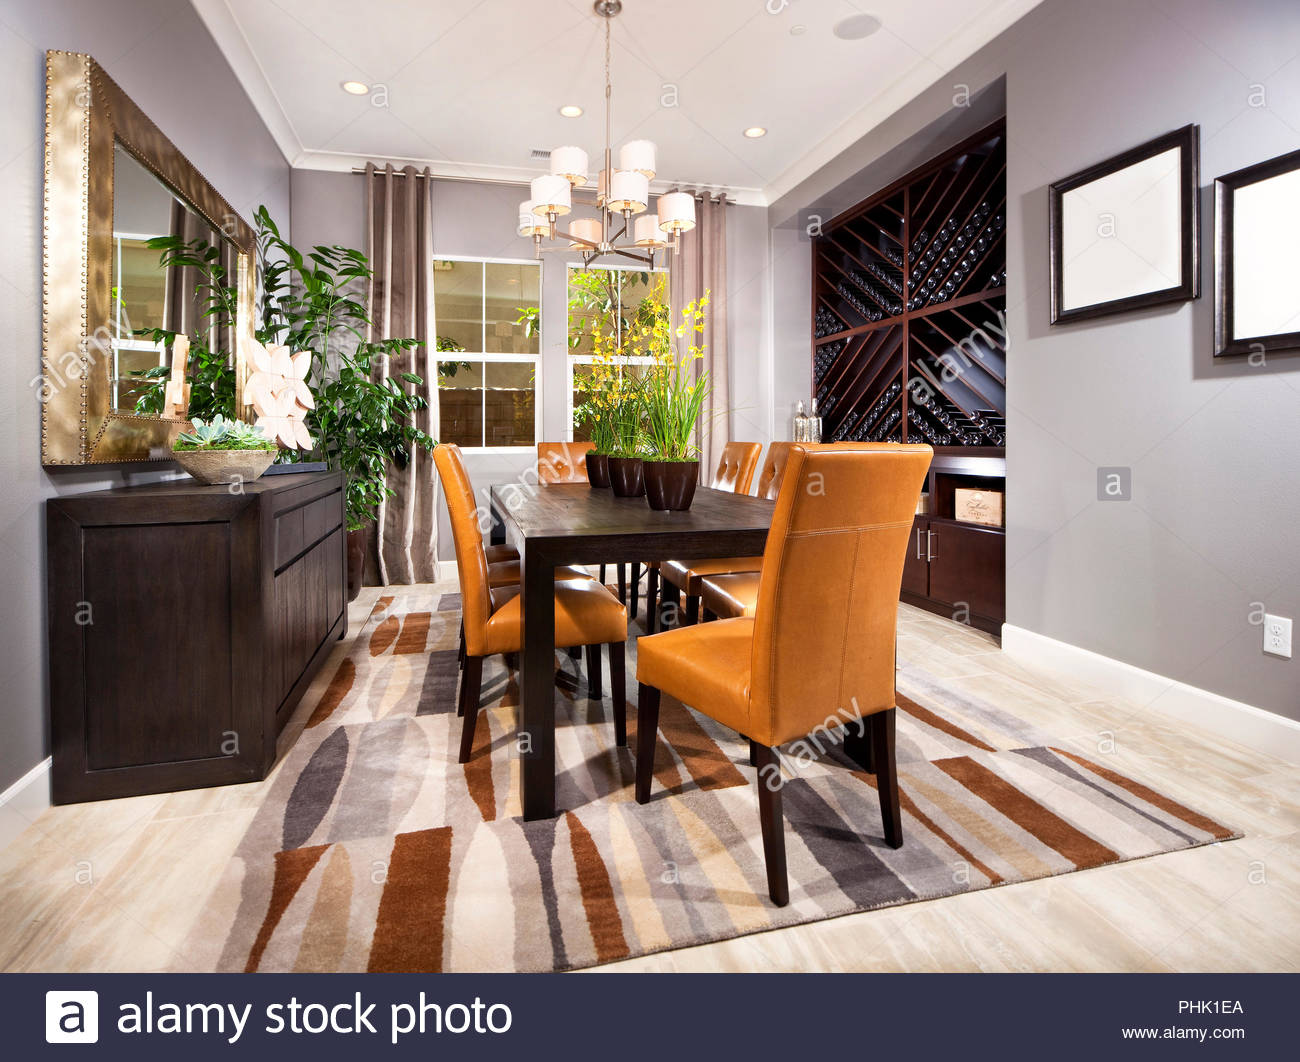 Dining room with pot plants - Stock Image